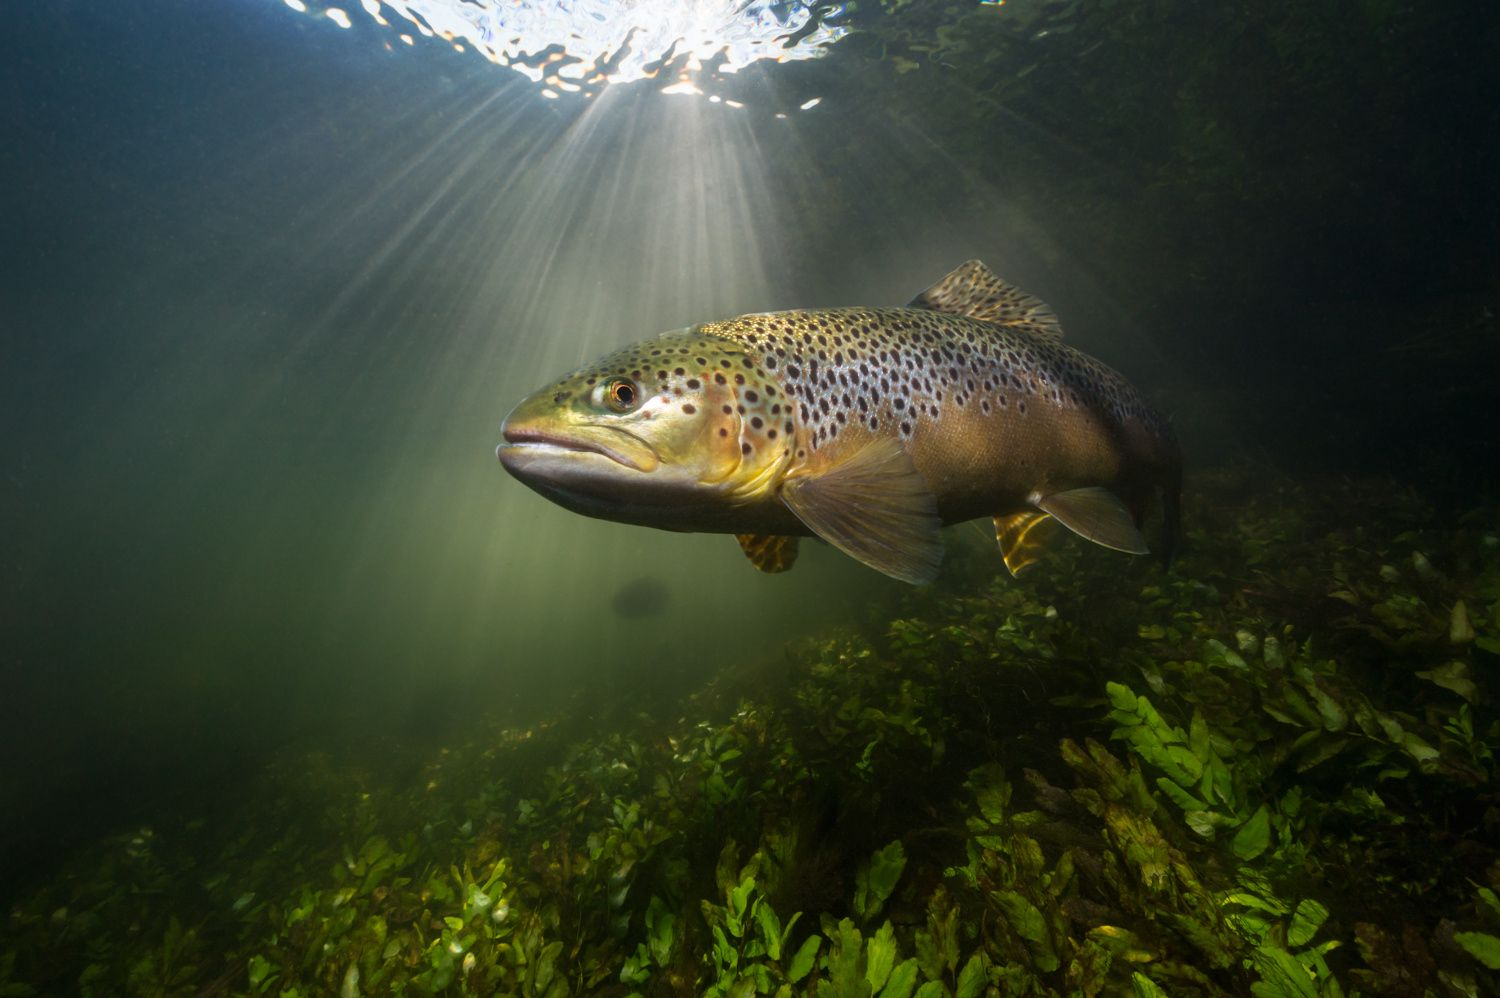 Brown Trout sunburst by Paul Colley on 500px